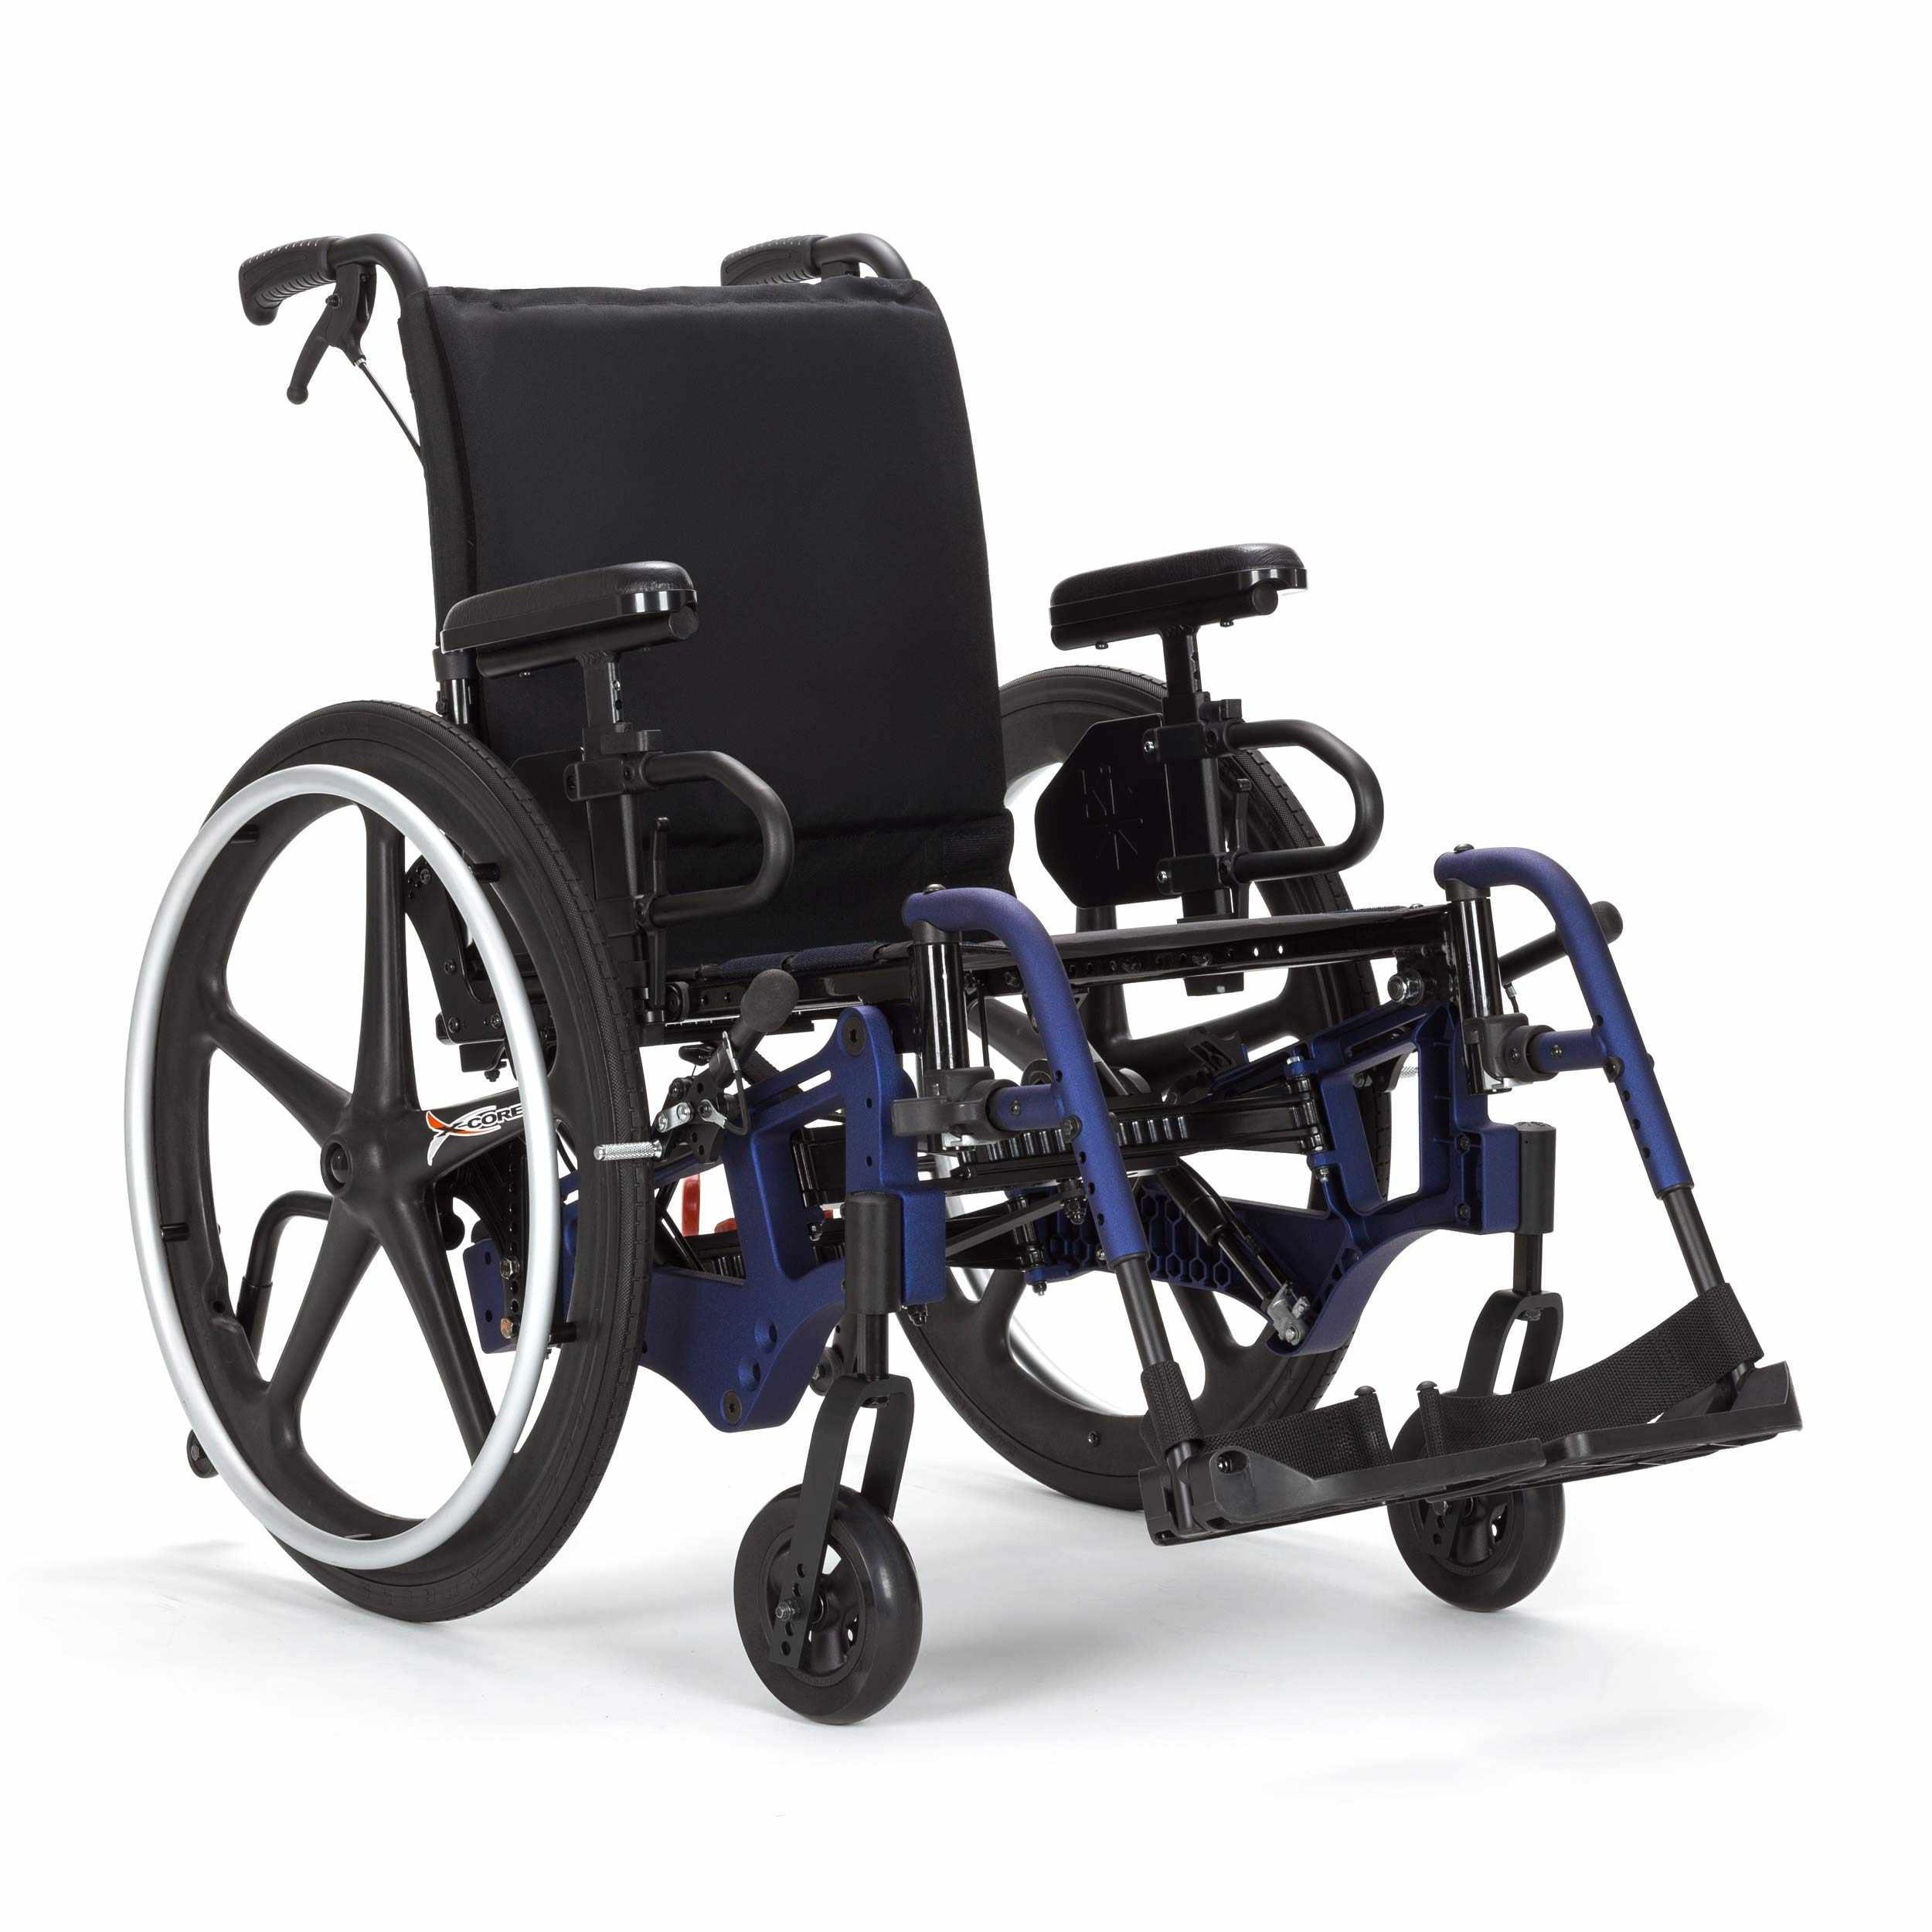 Ki Mobility Liberty FT Basic Tilt Wheelchair